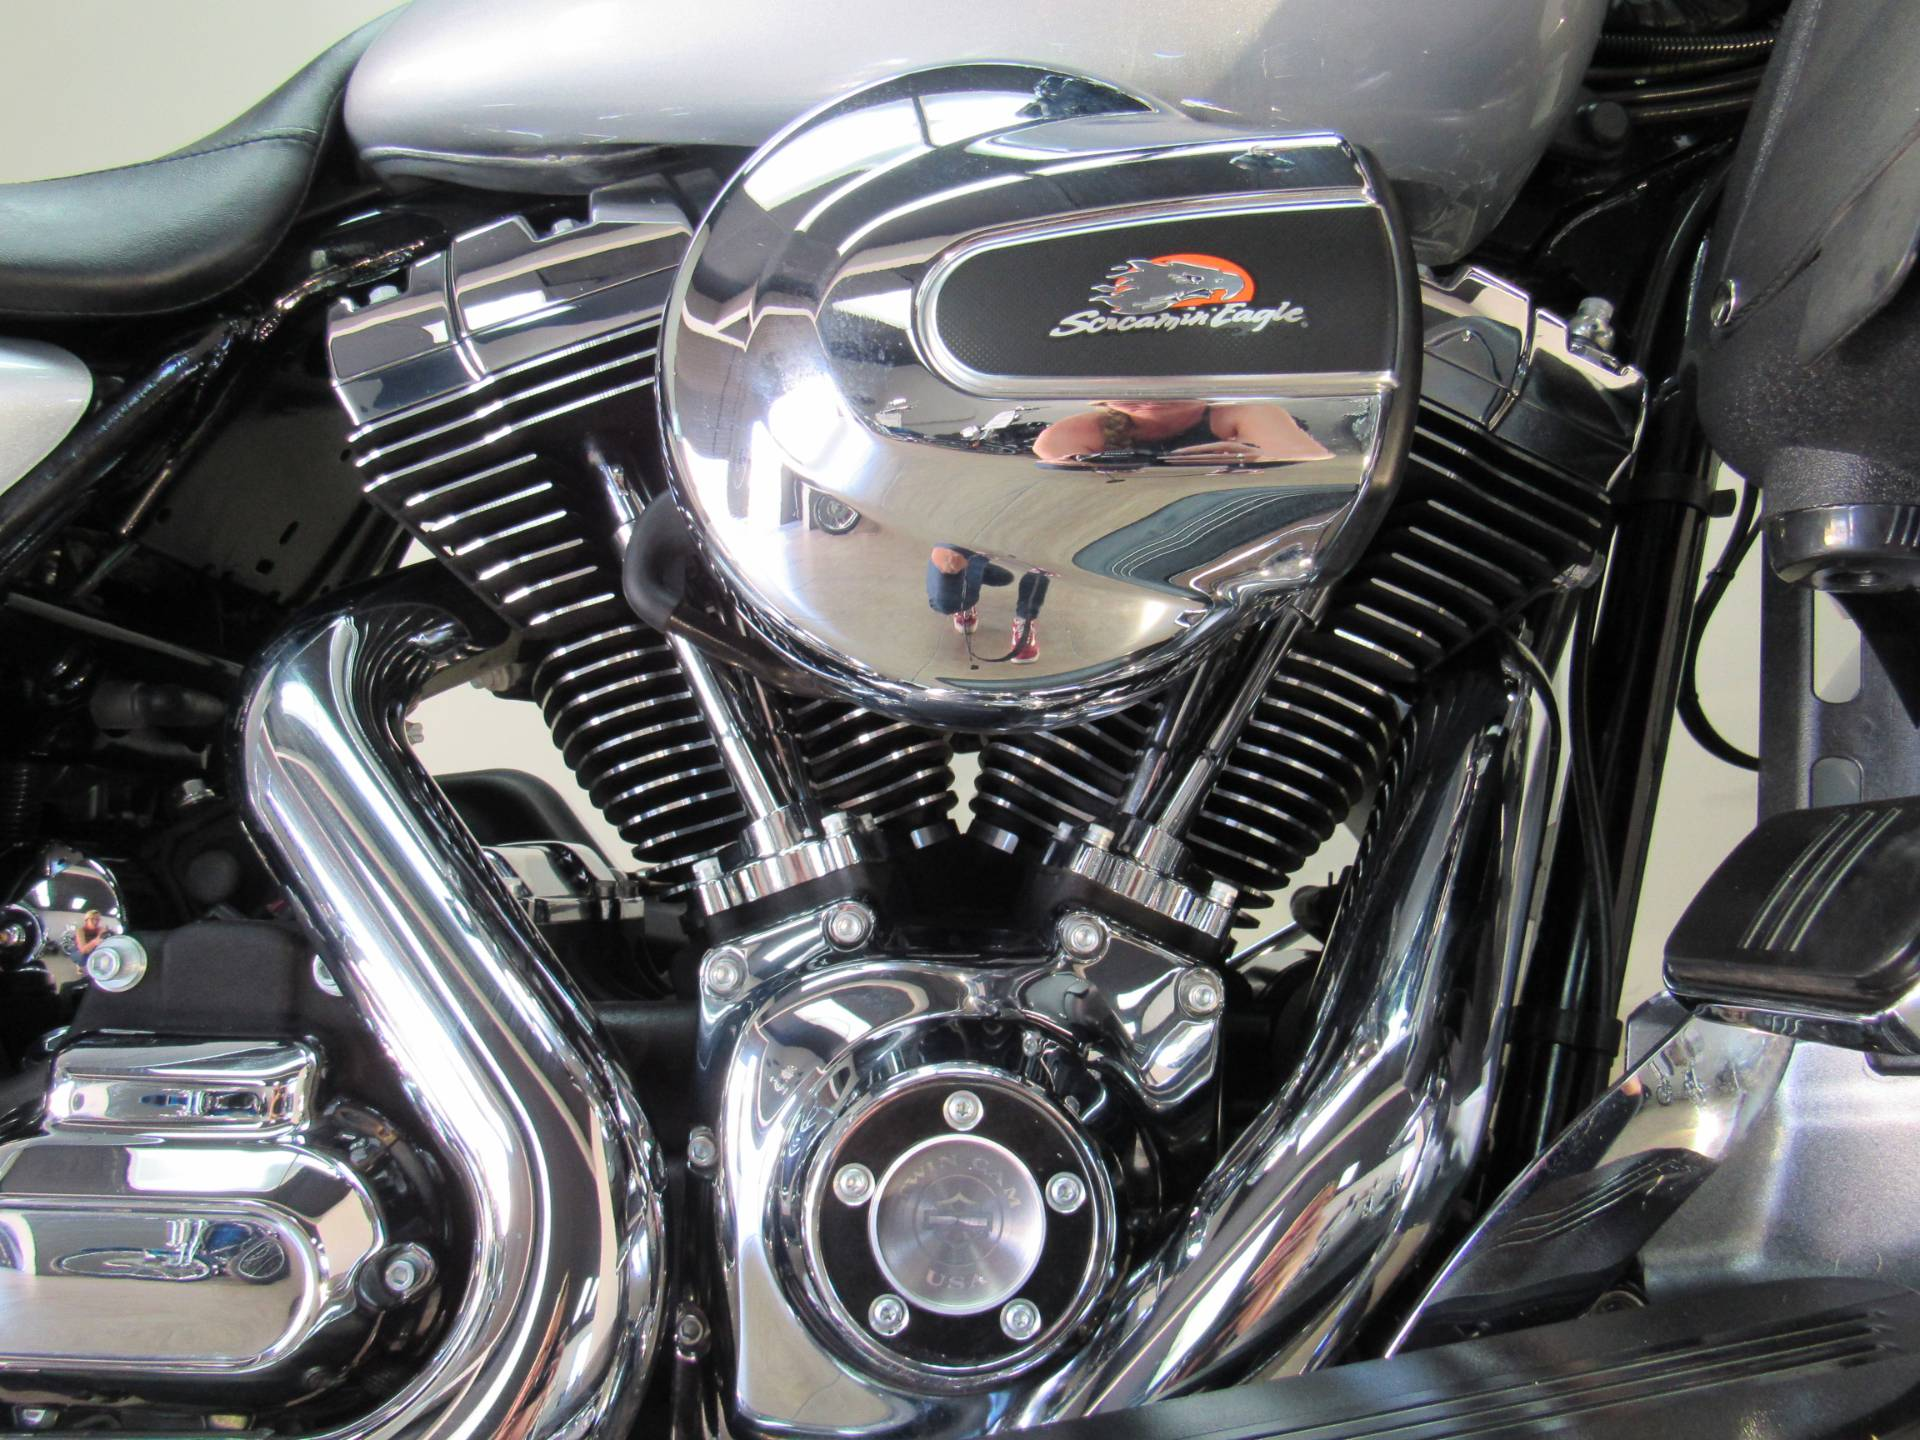 2015 Harley-Davidson Street Glide® Special in Temecula, California - Photo 11